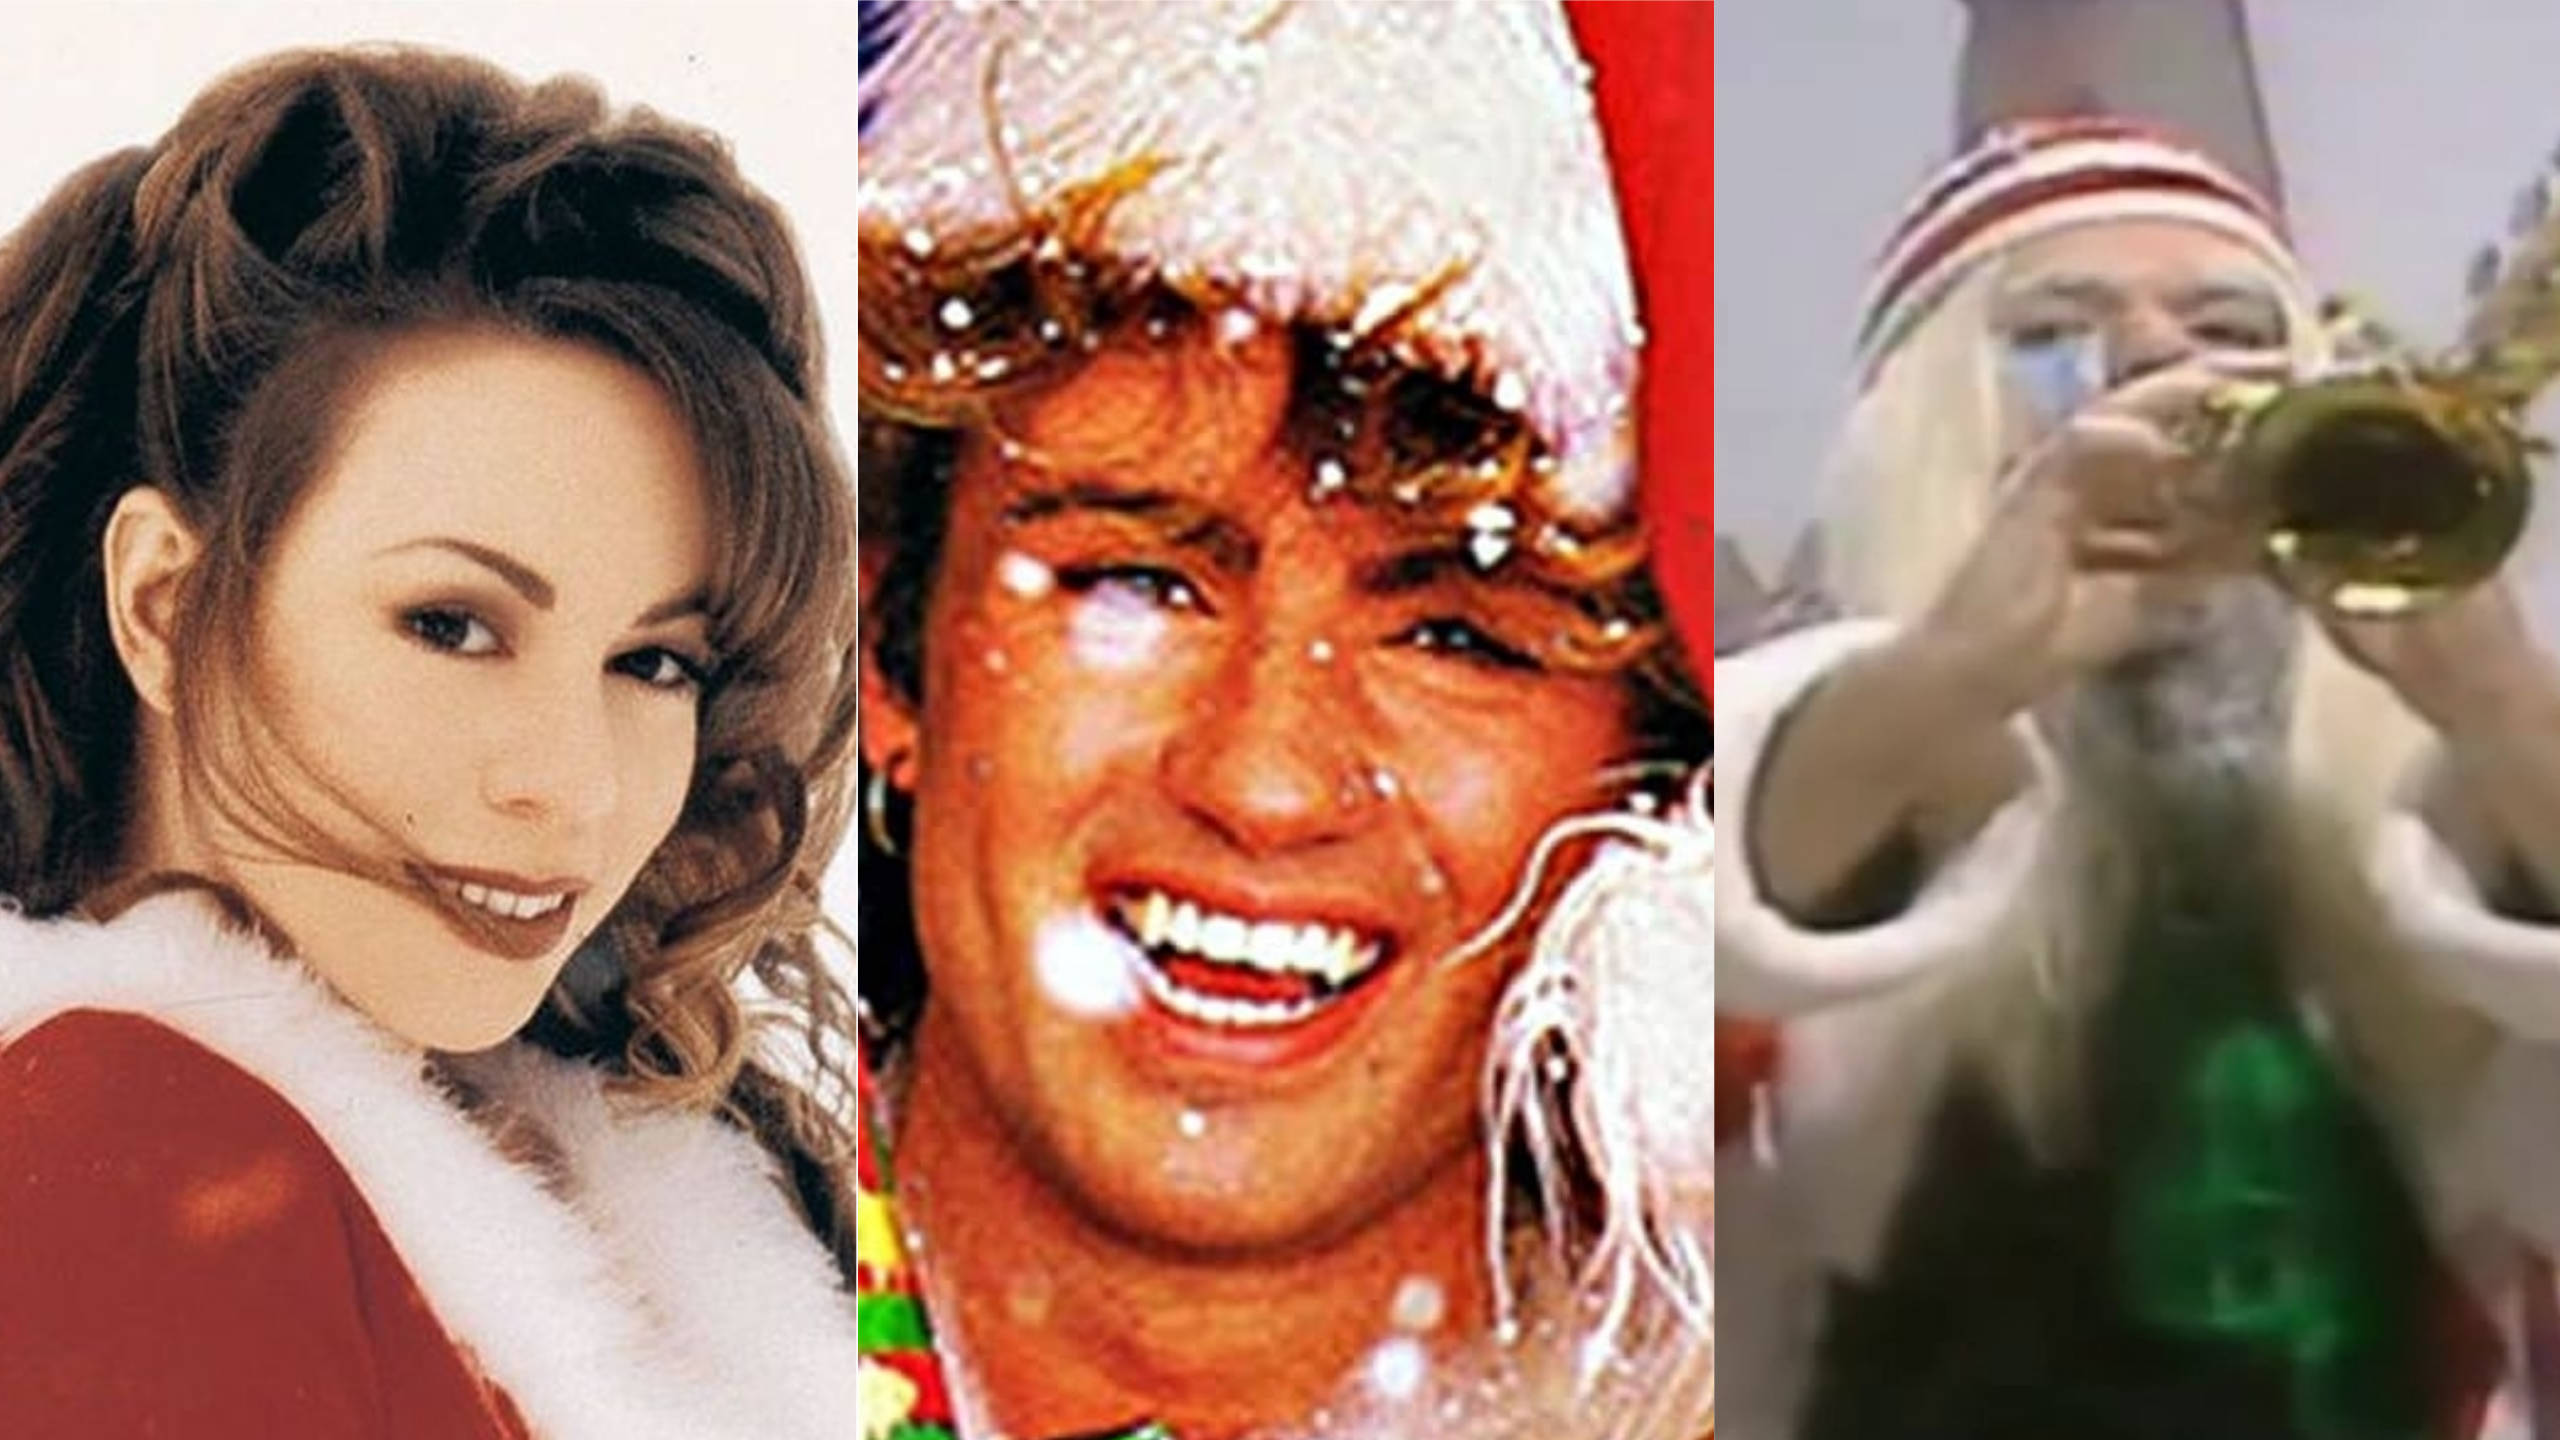 The 30 best Christmas songs of all time - Smooth